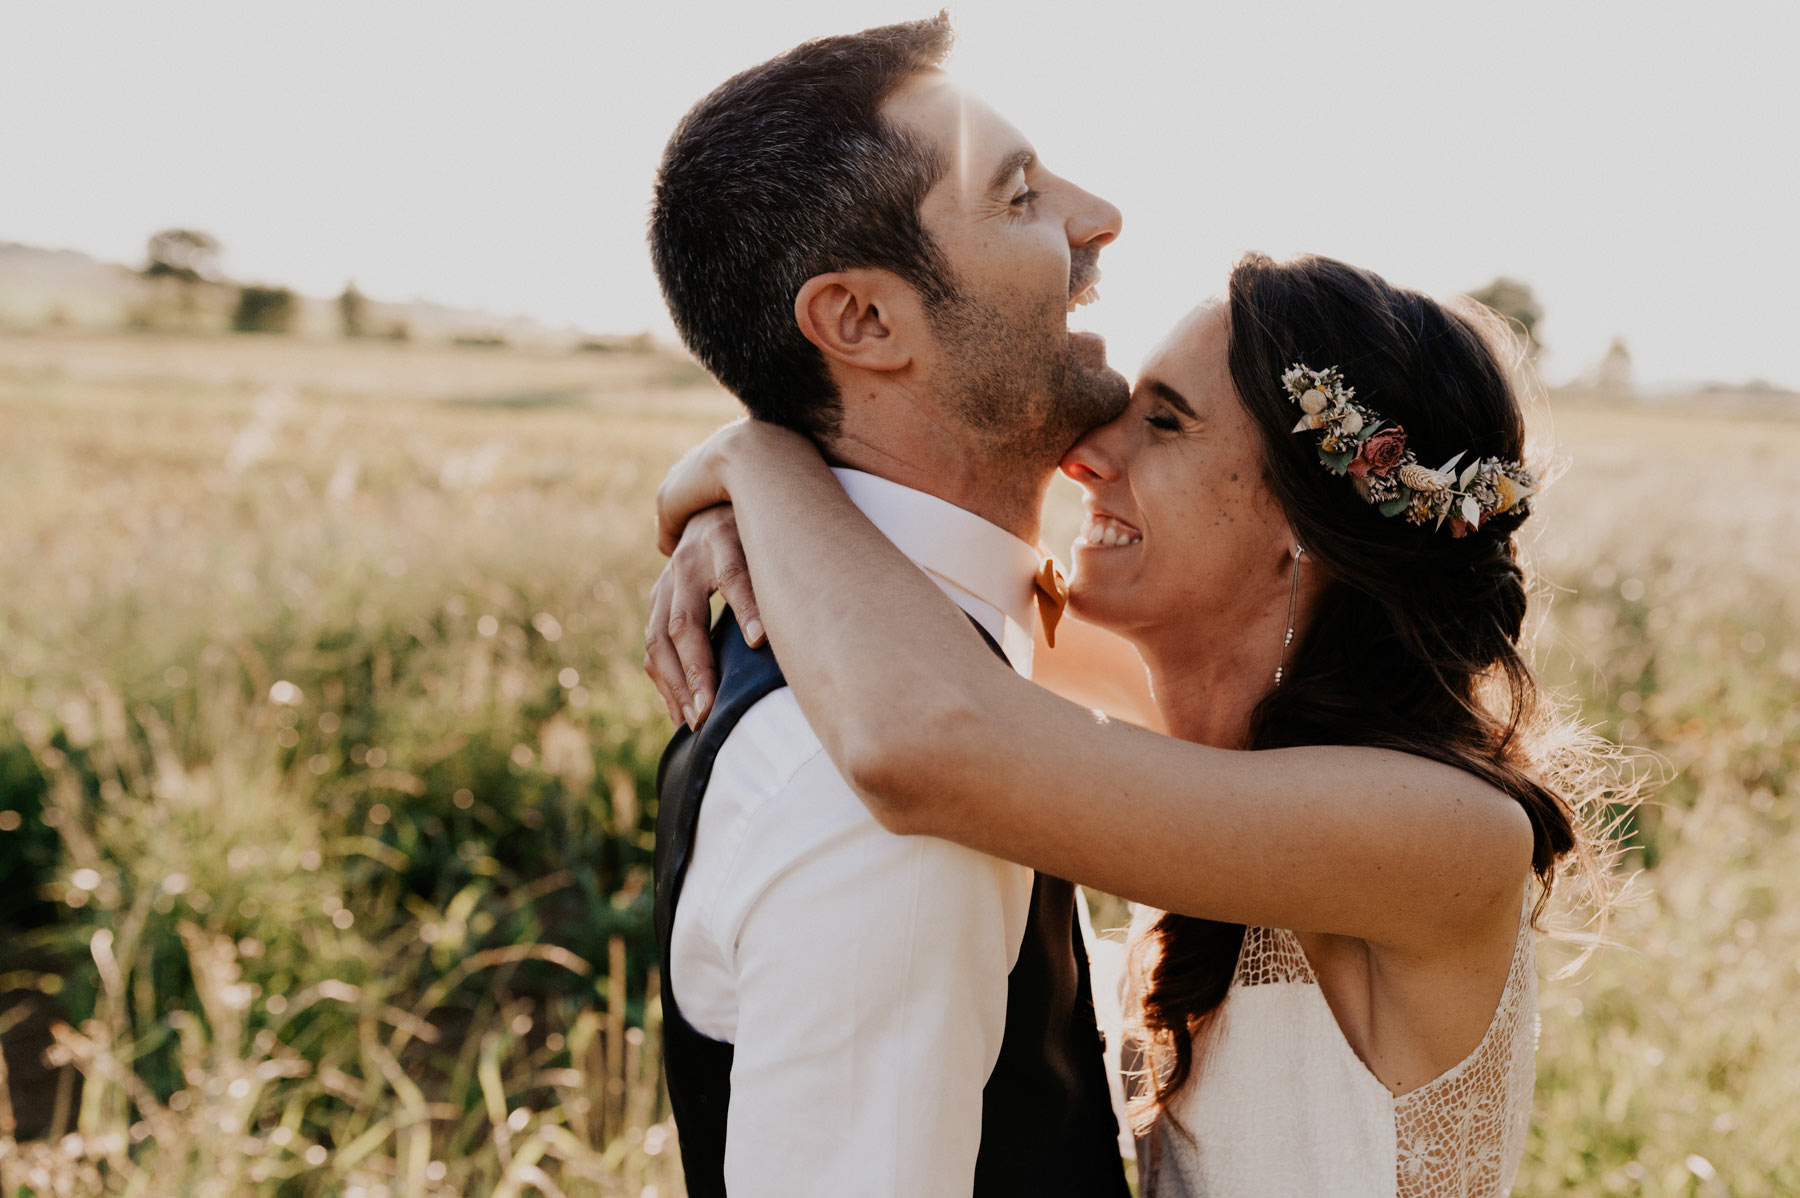 mariage_canicule_celine_deligey_photographe_mariage_a_toulouse